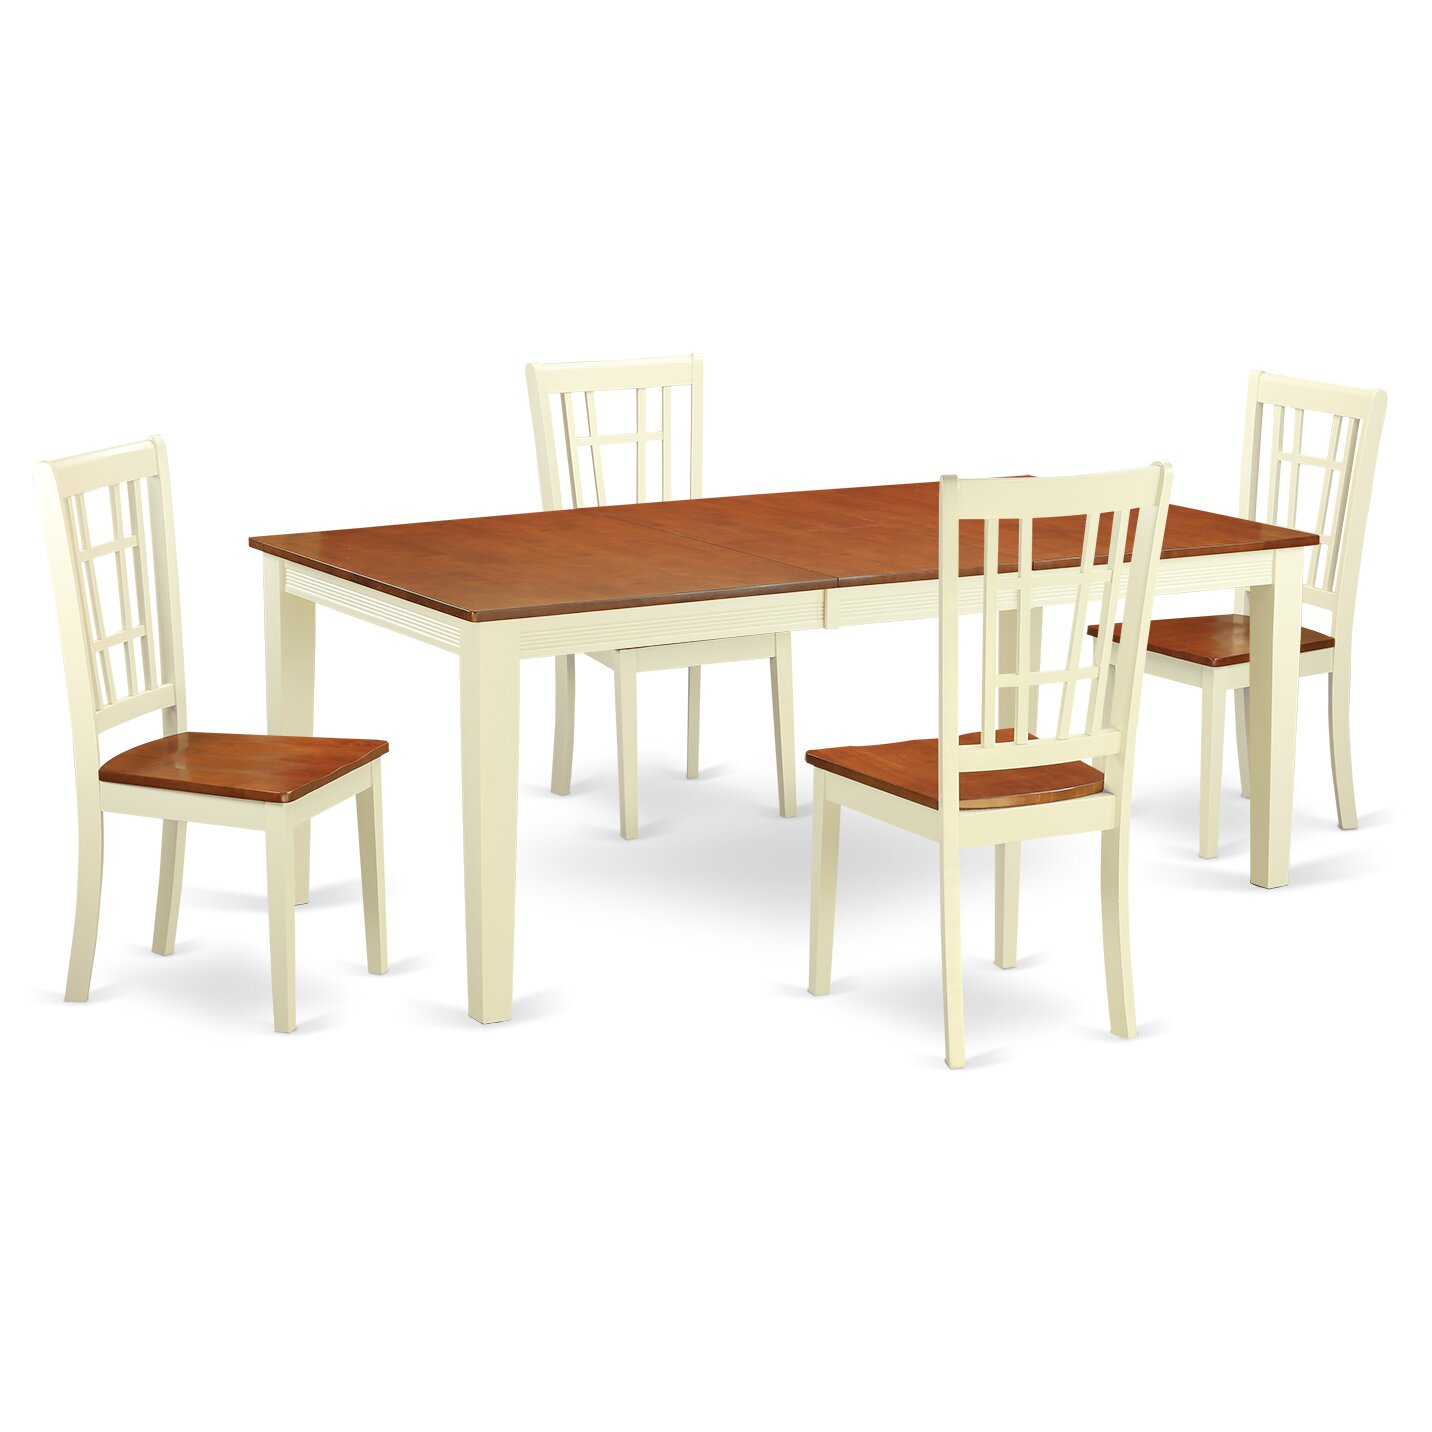 East west quincy 5 piece dining set wayfair for Small dining set with bench